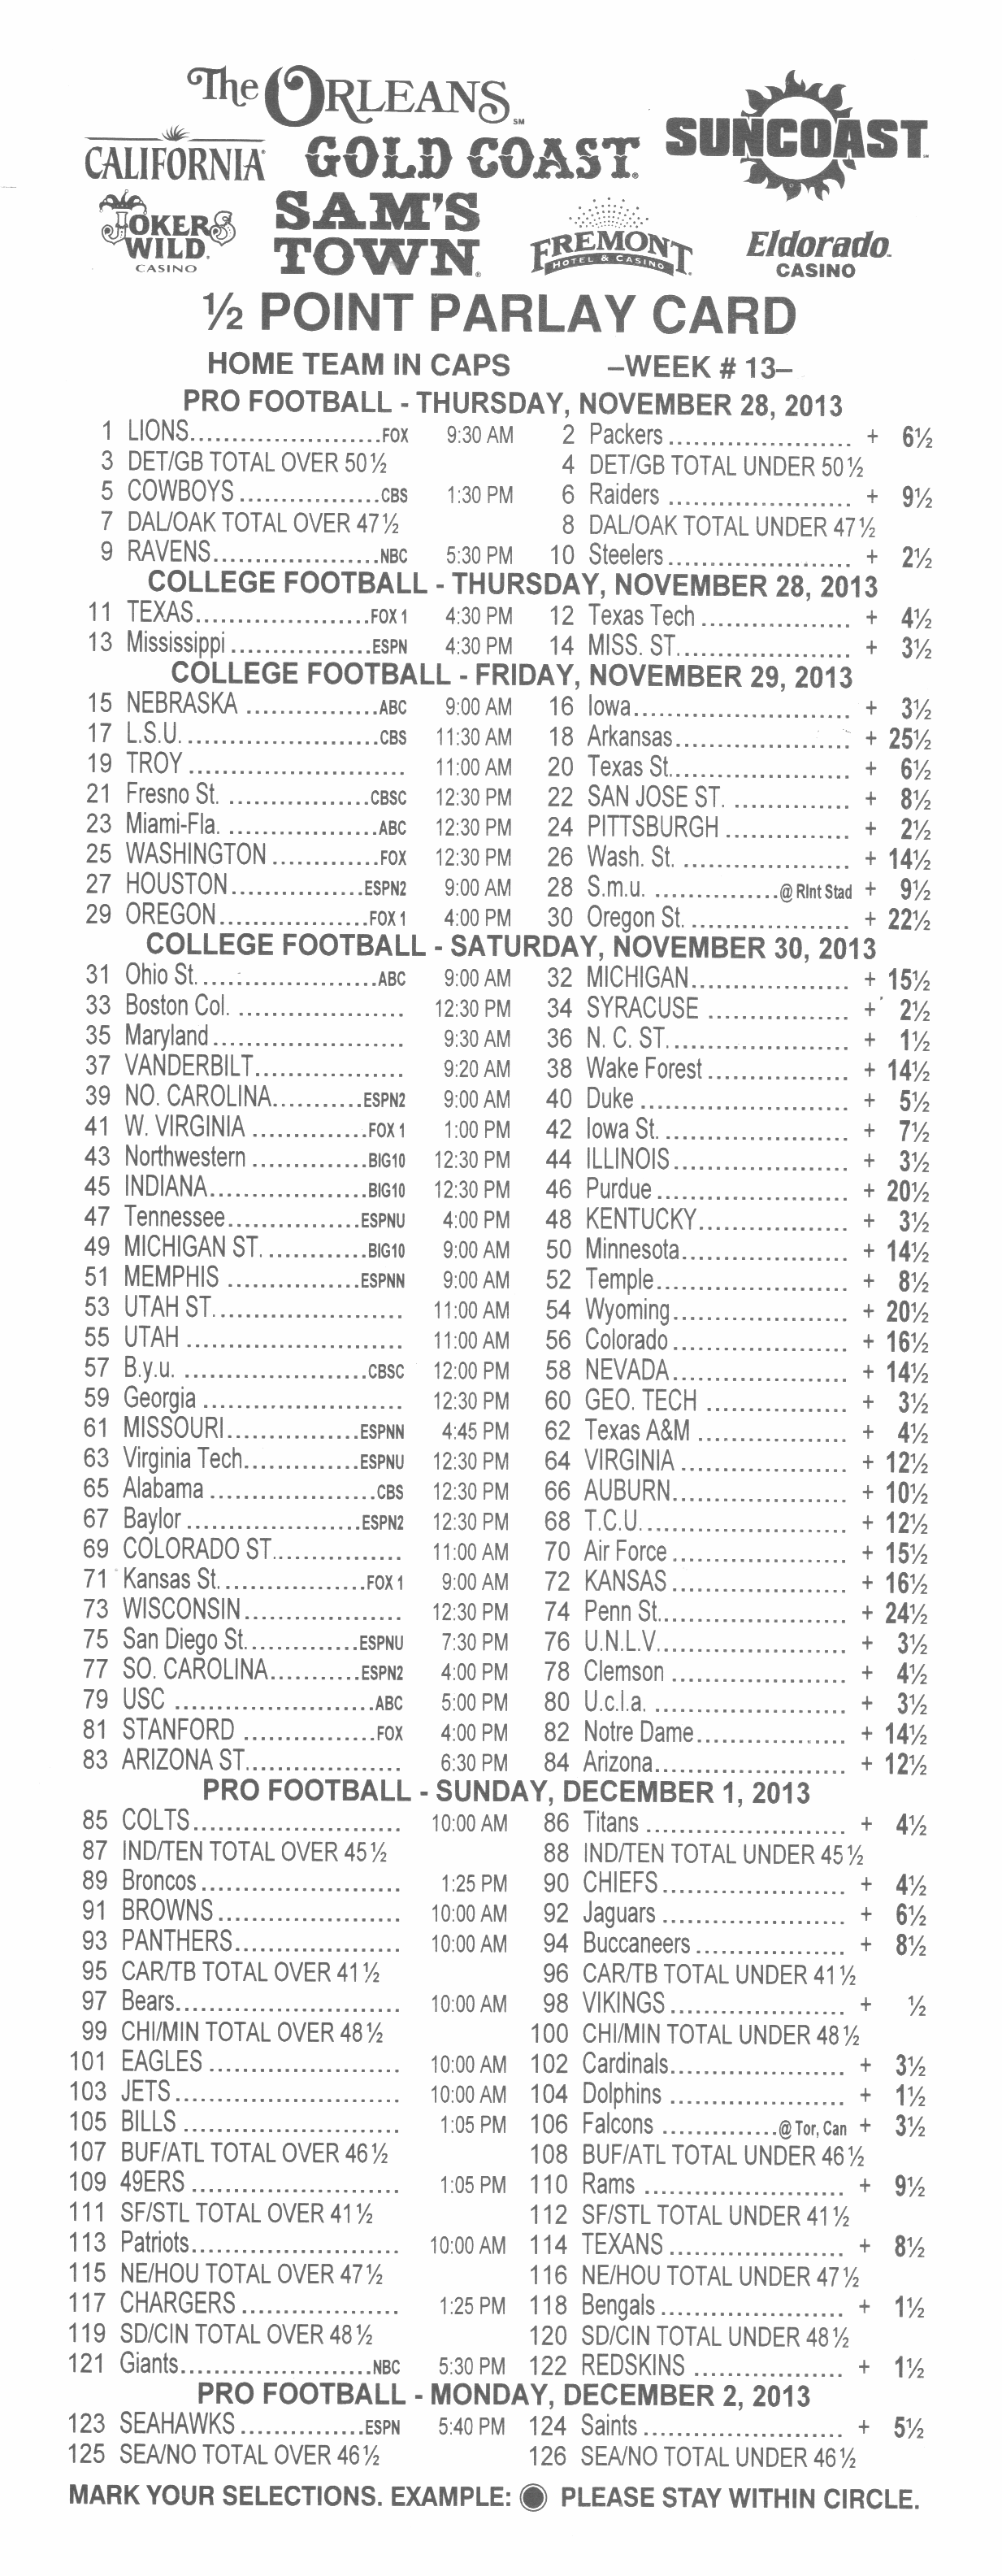 vegas odds on 3 team parlay football bet